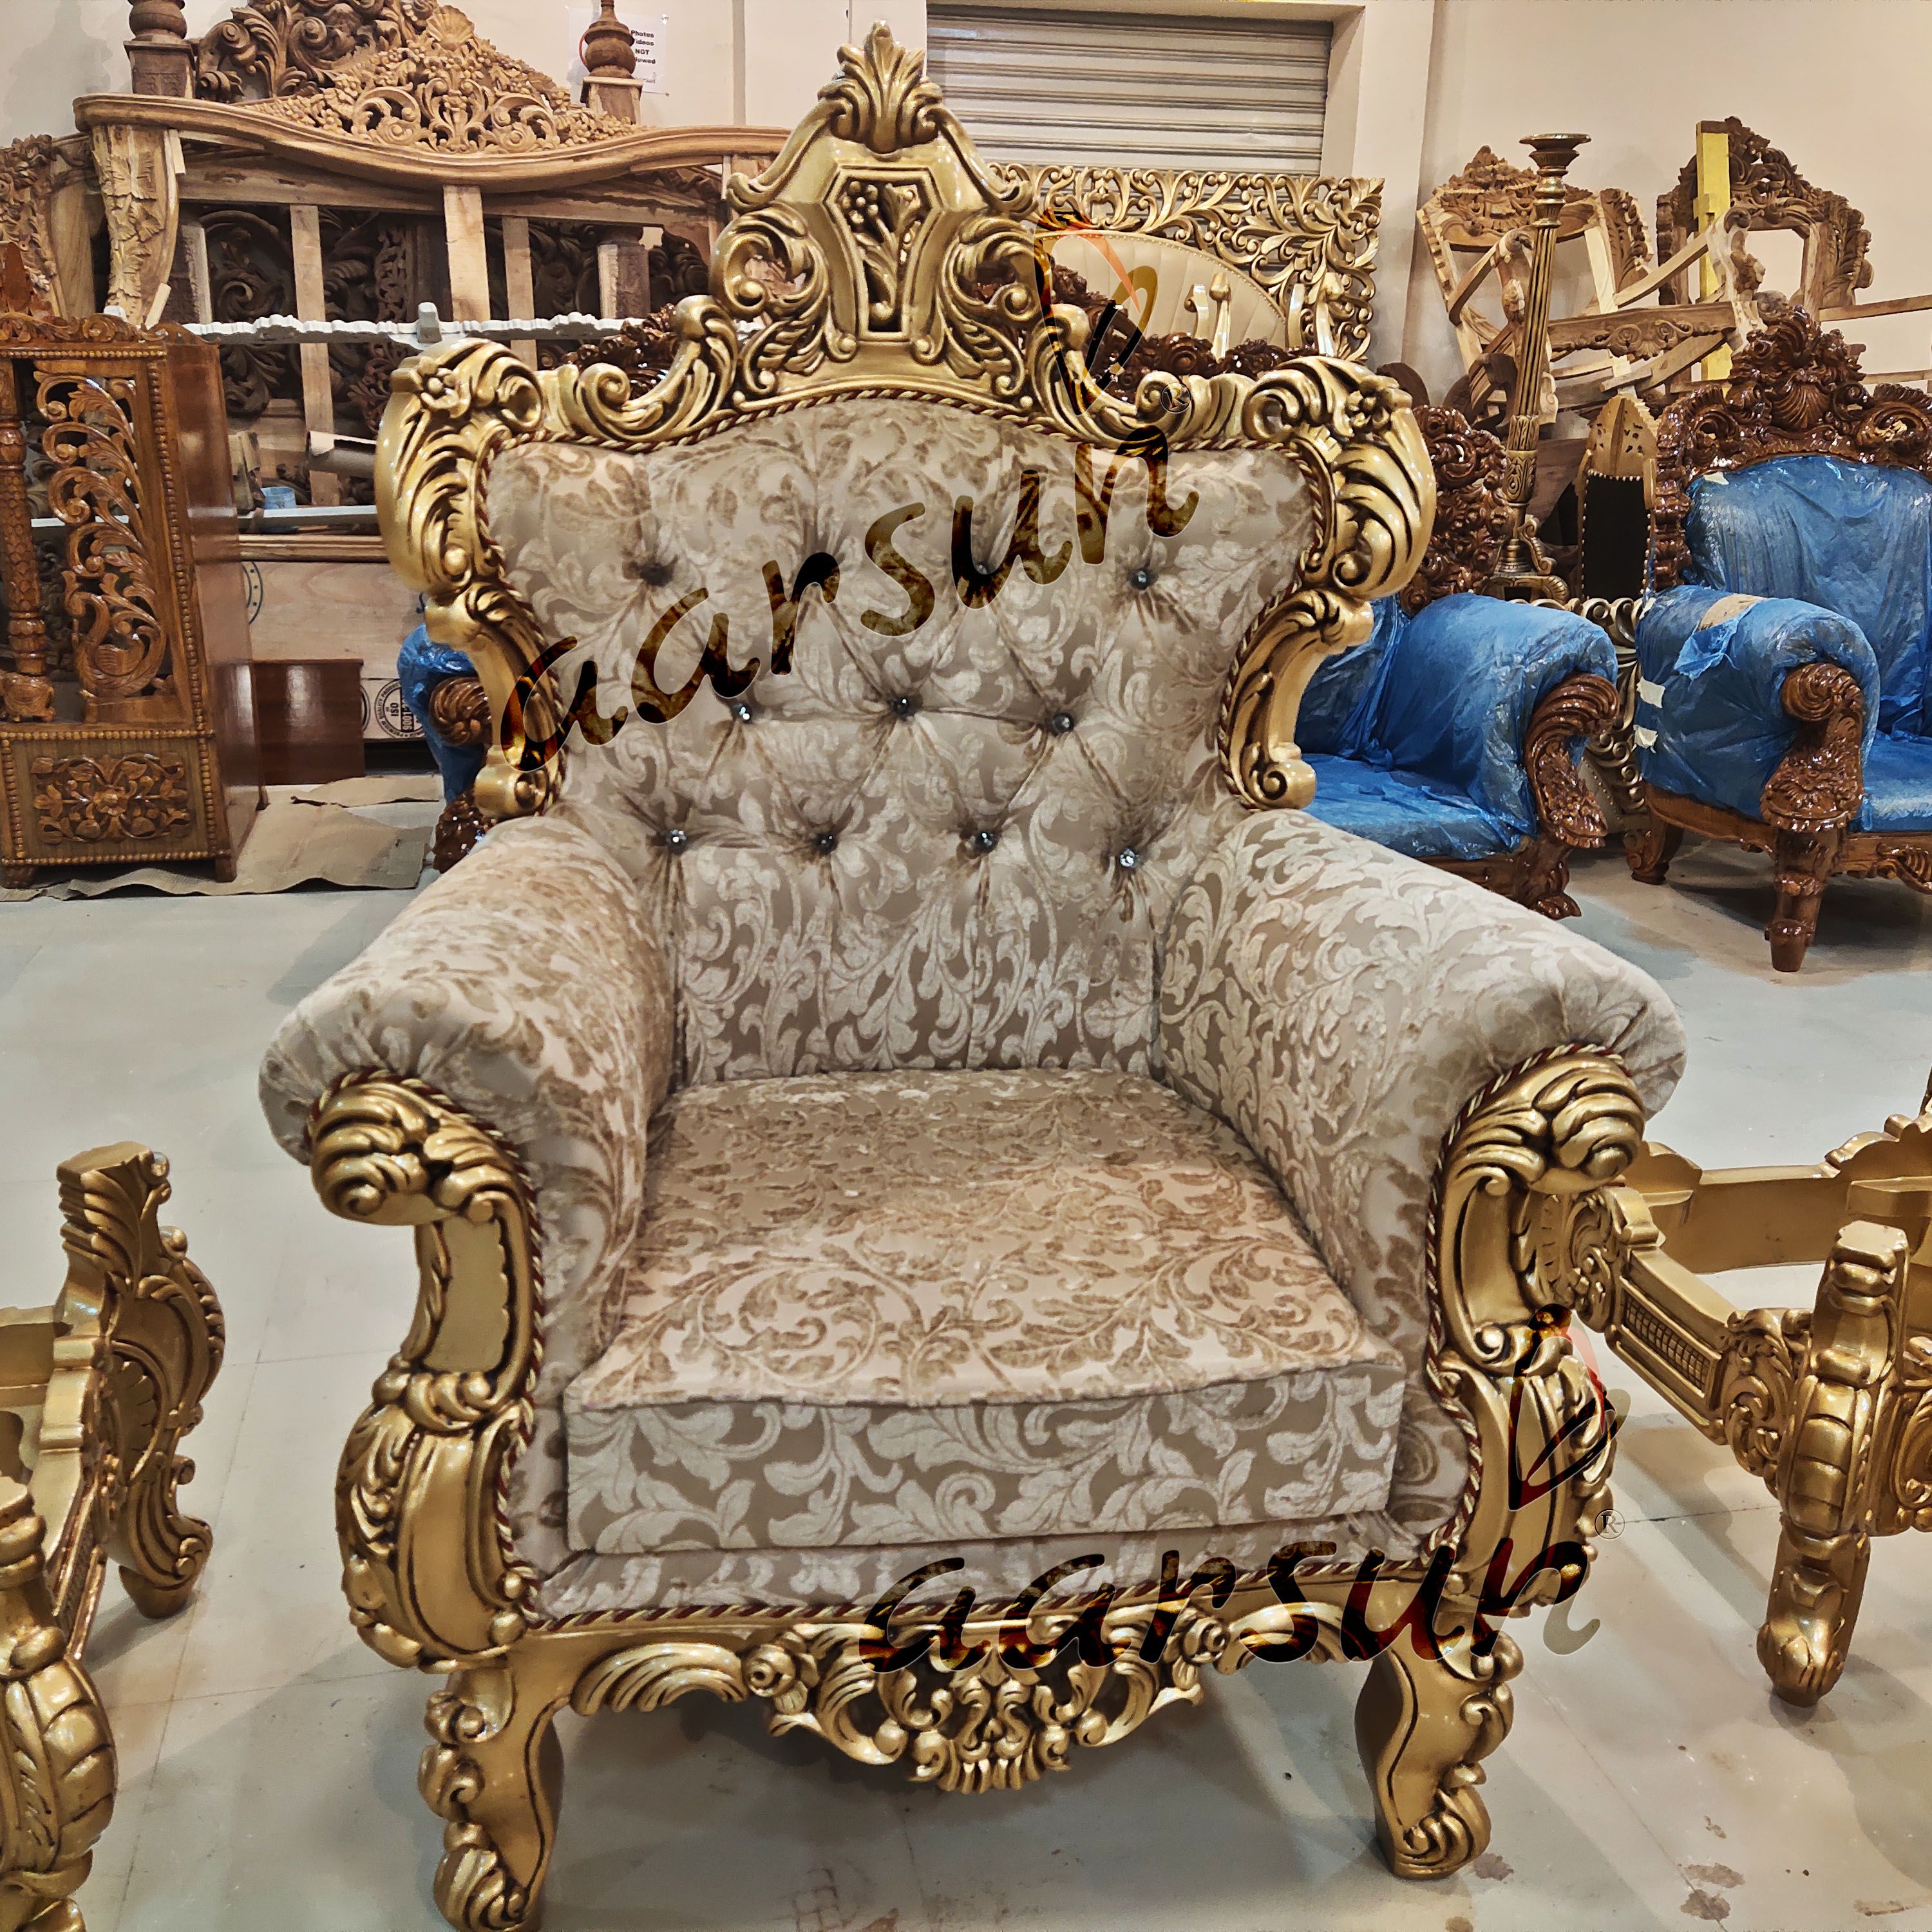 Best Wooden Sofa Set With Royal Finish Yt 218 In 2020 Wooden Sofa Set Wooden Sofa Sofa Set